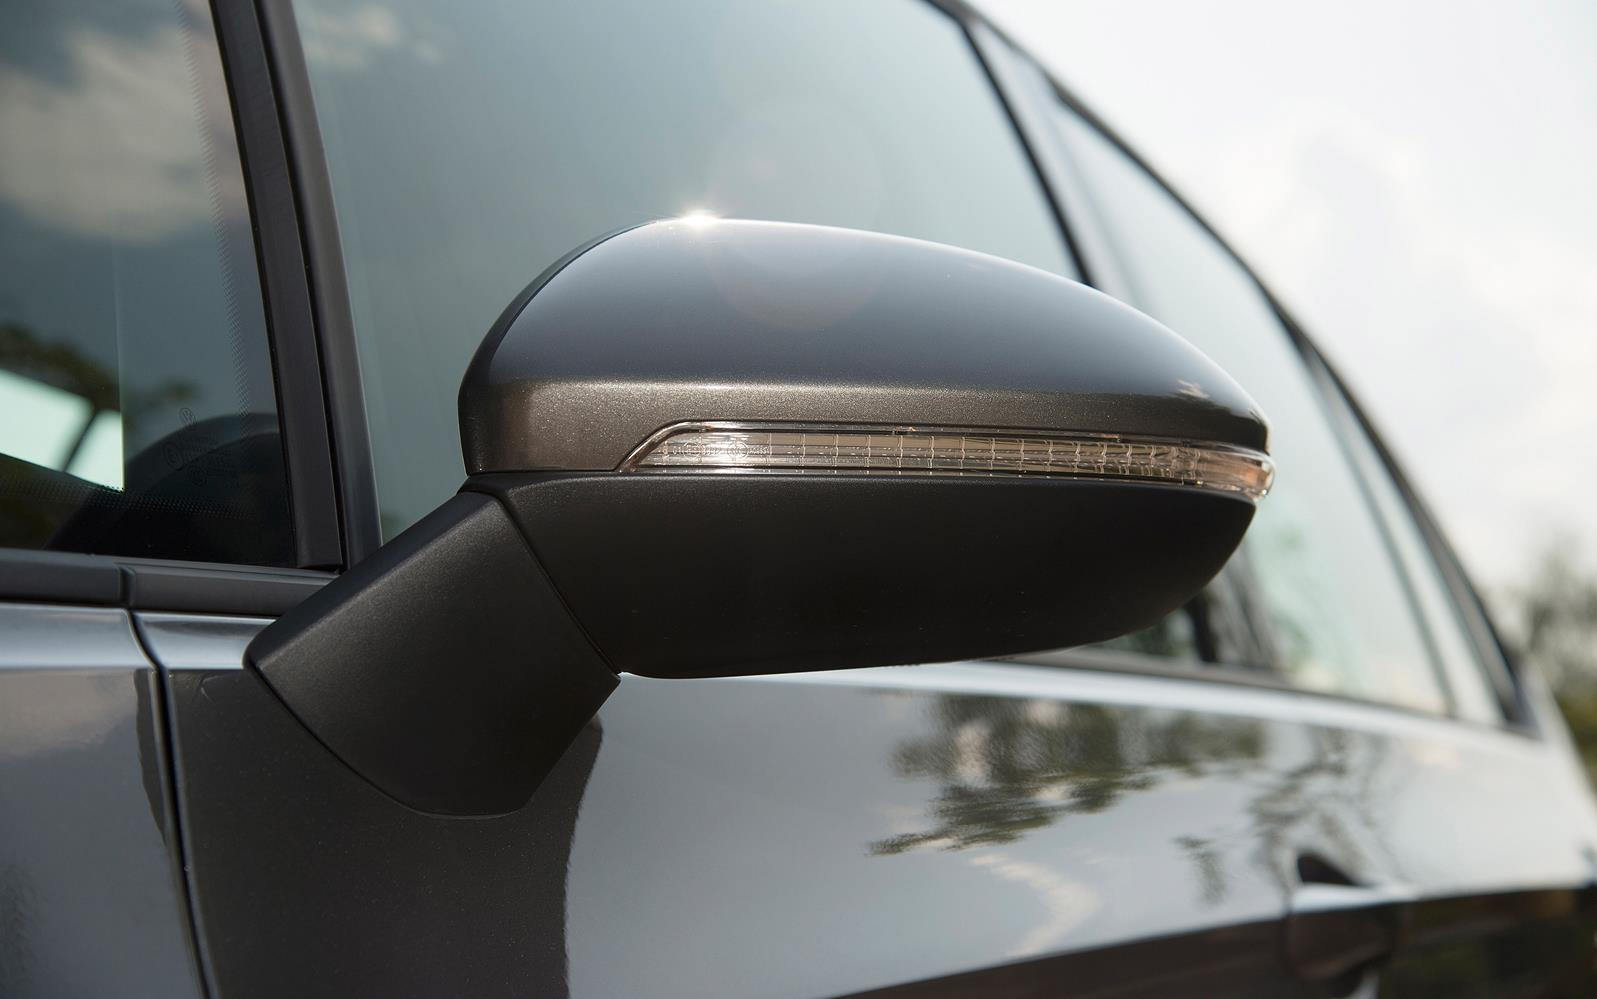 Volkswagen Golf SV 2015 Mirror Detail